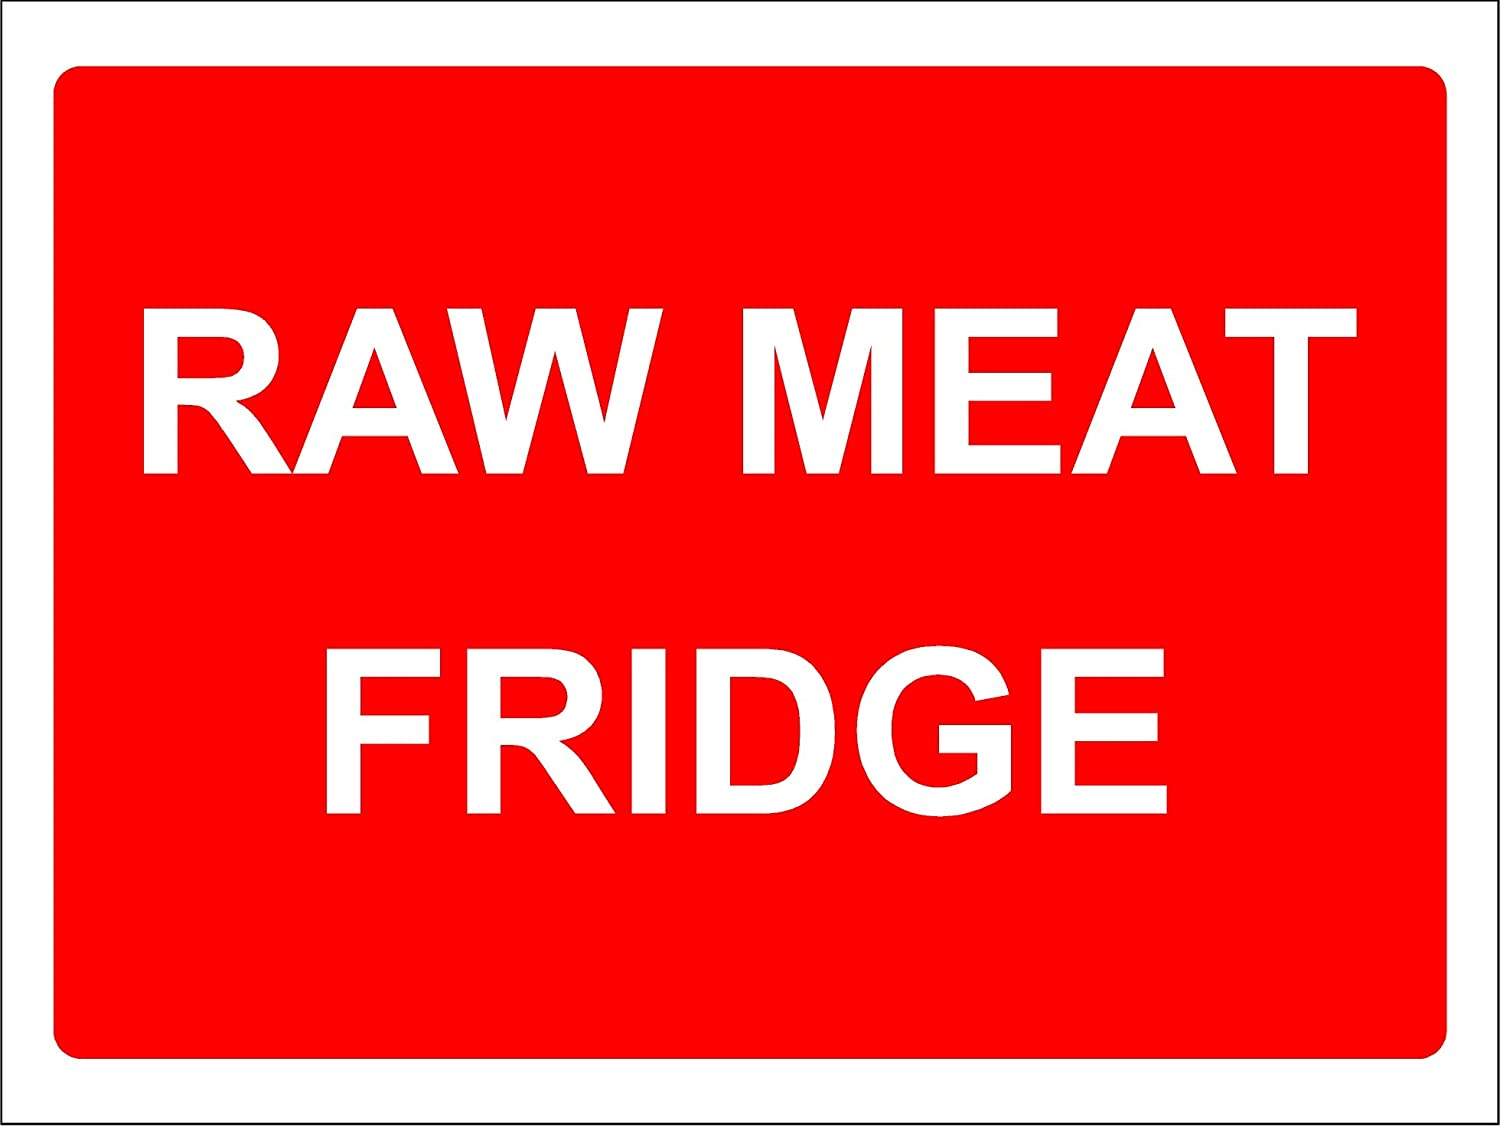 Self Adhesive Sticker Raw Meats Only 150mm x 50mm Food Hygiene